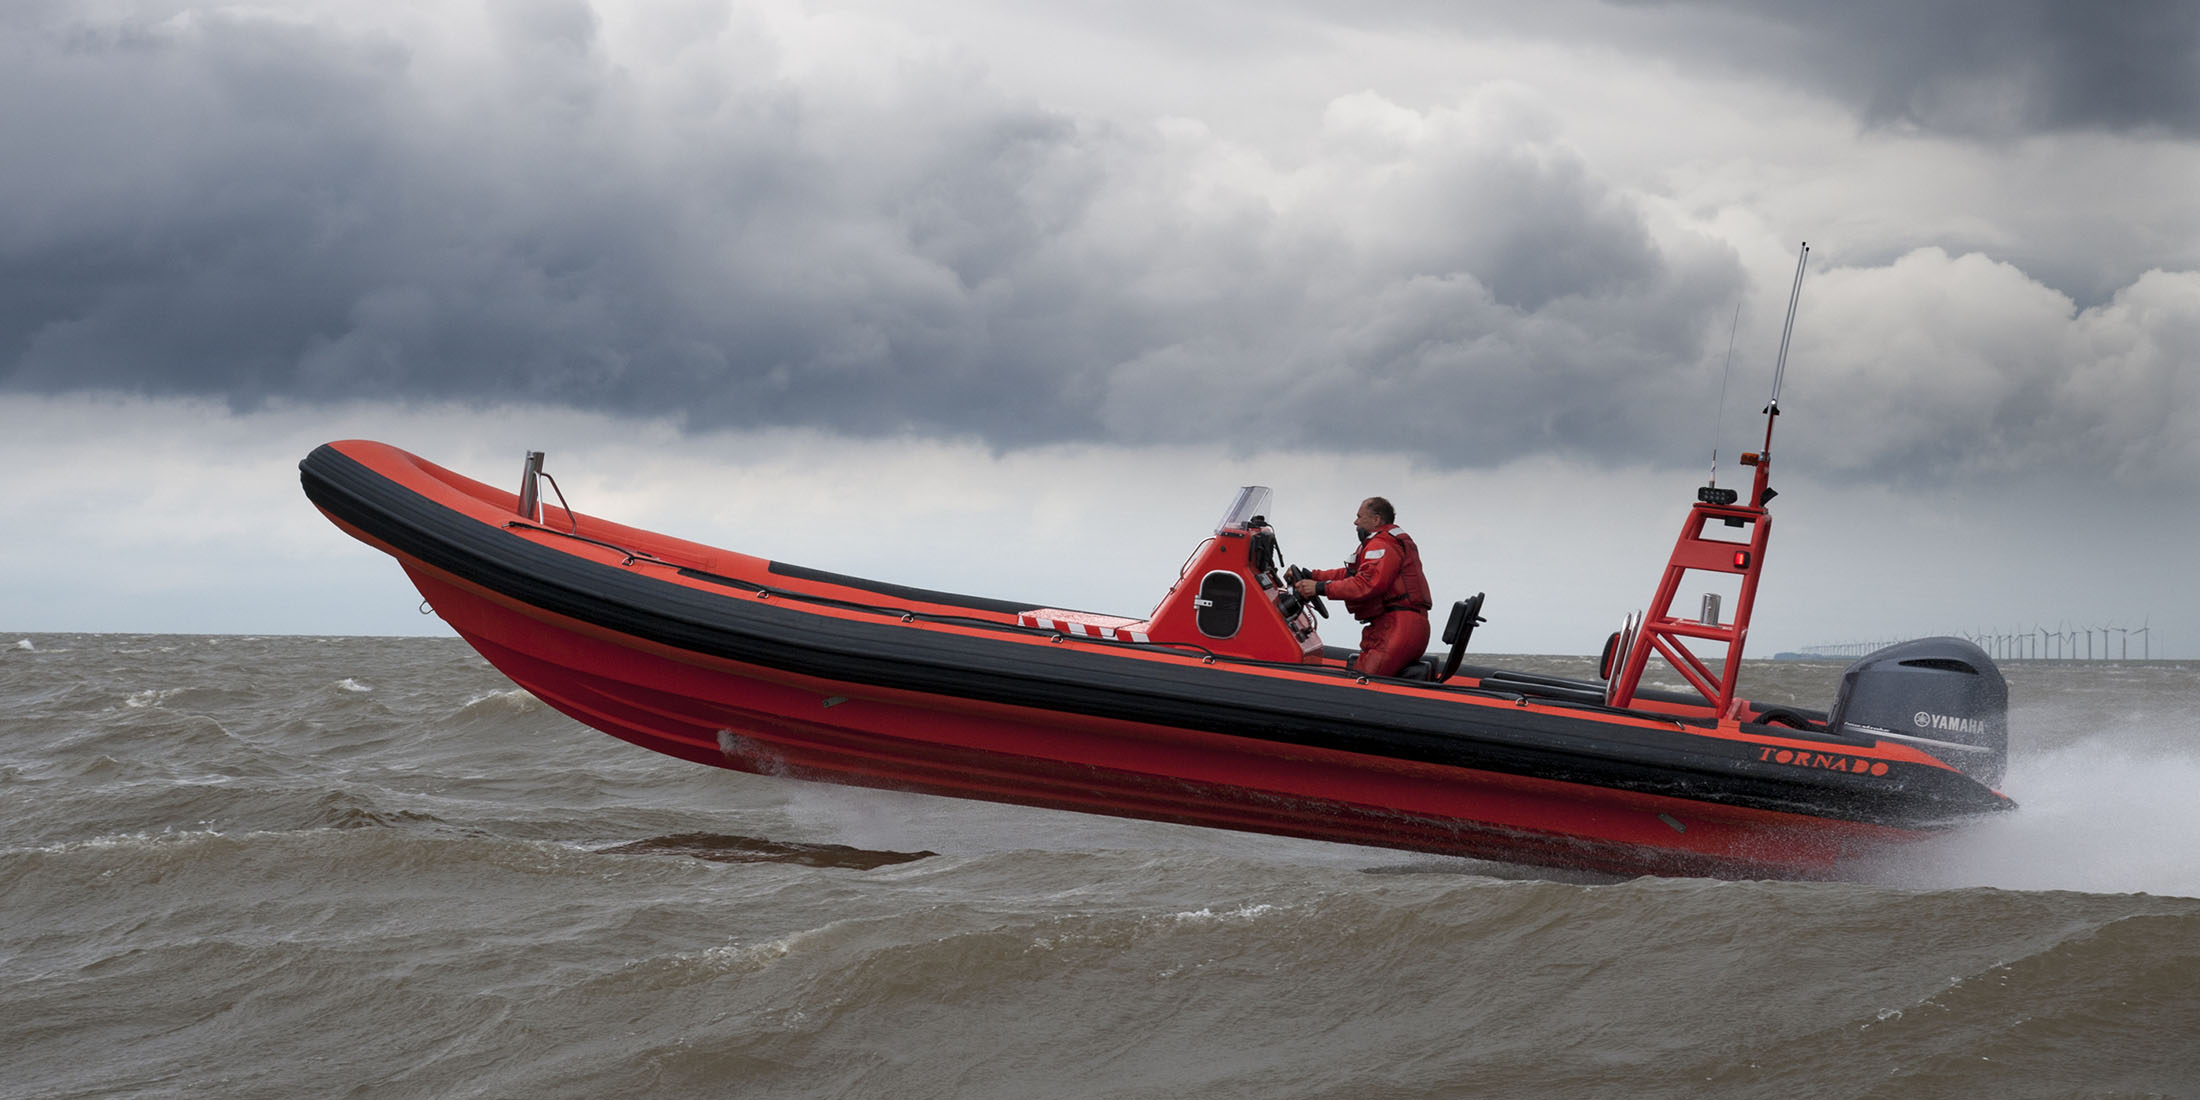 Tornado 10m super model RIB. One of our favorite RIBs in its category